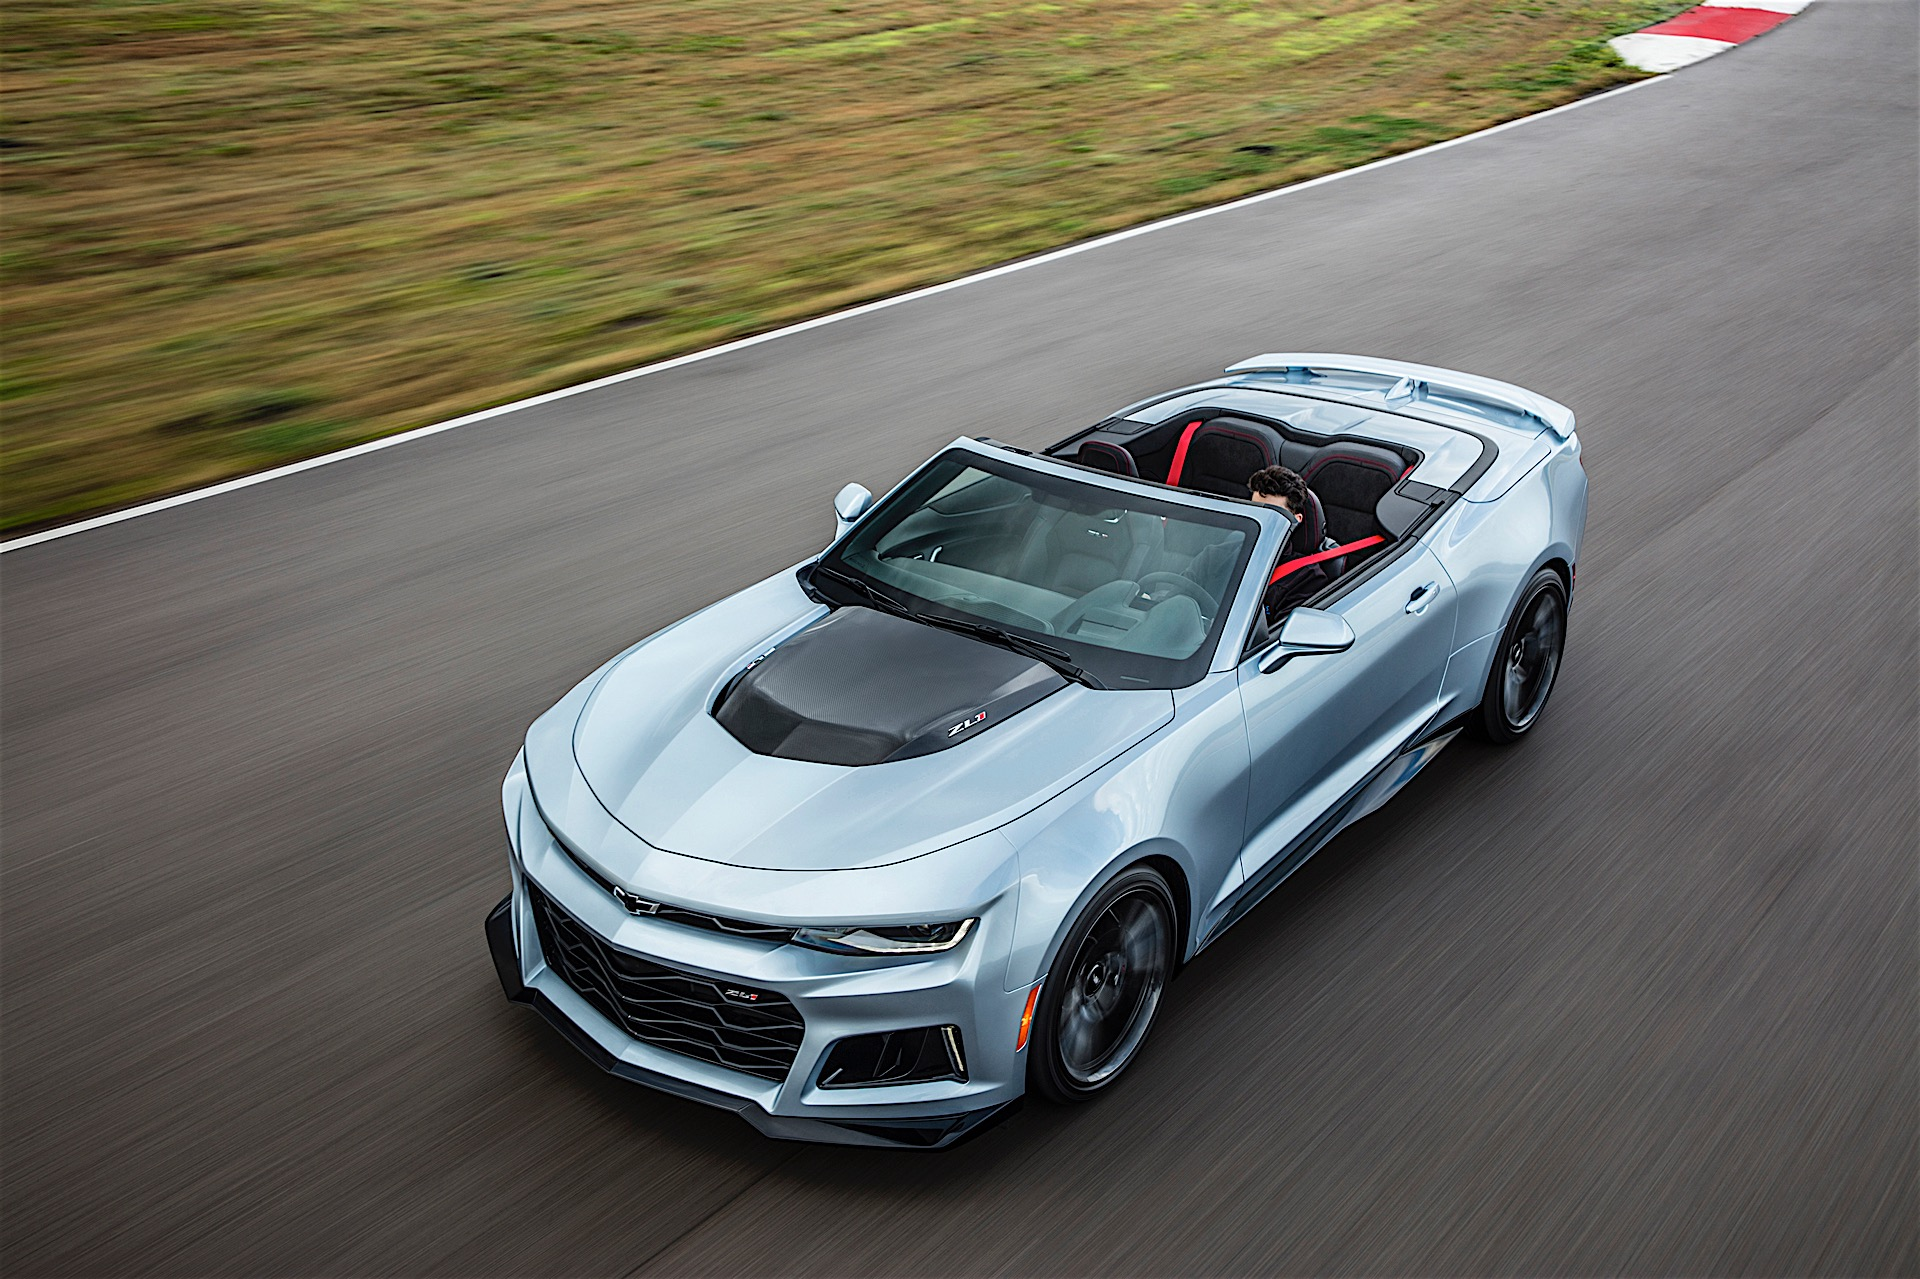 2017 chevrolet camaro zl1 convertible brings its soft top in new york autoevolution. Black Bedroom Furniture Sets. Home Design Ideas